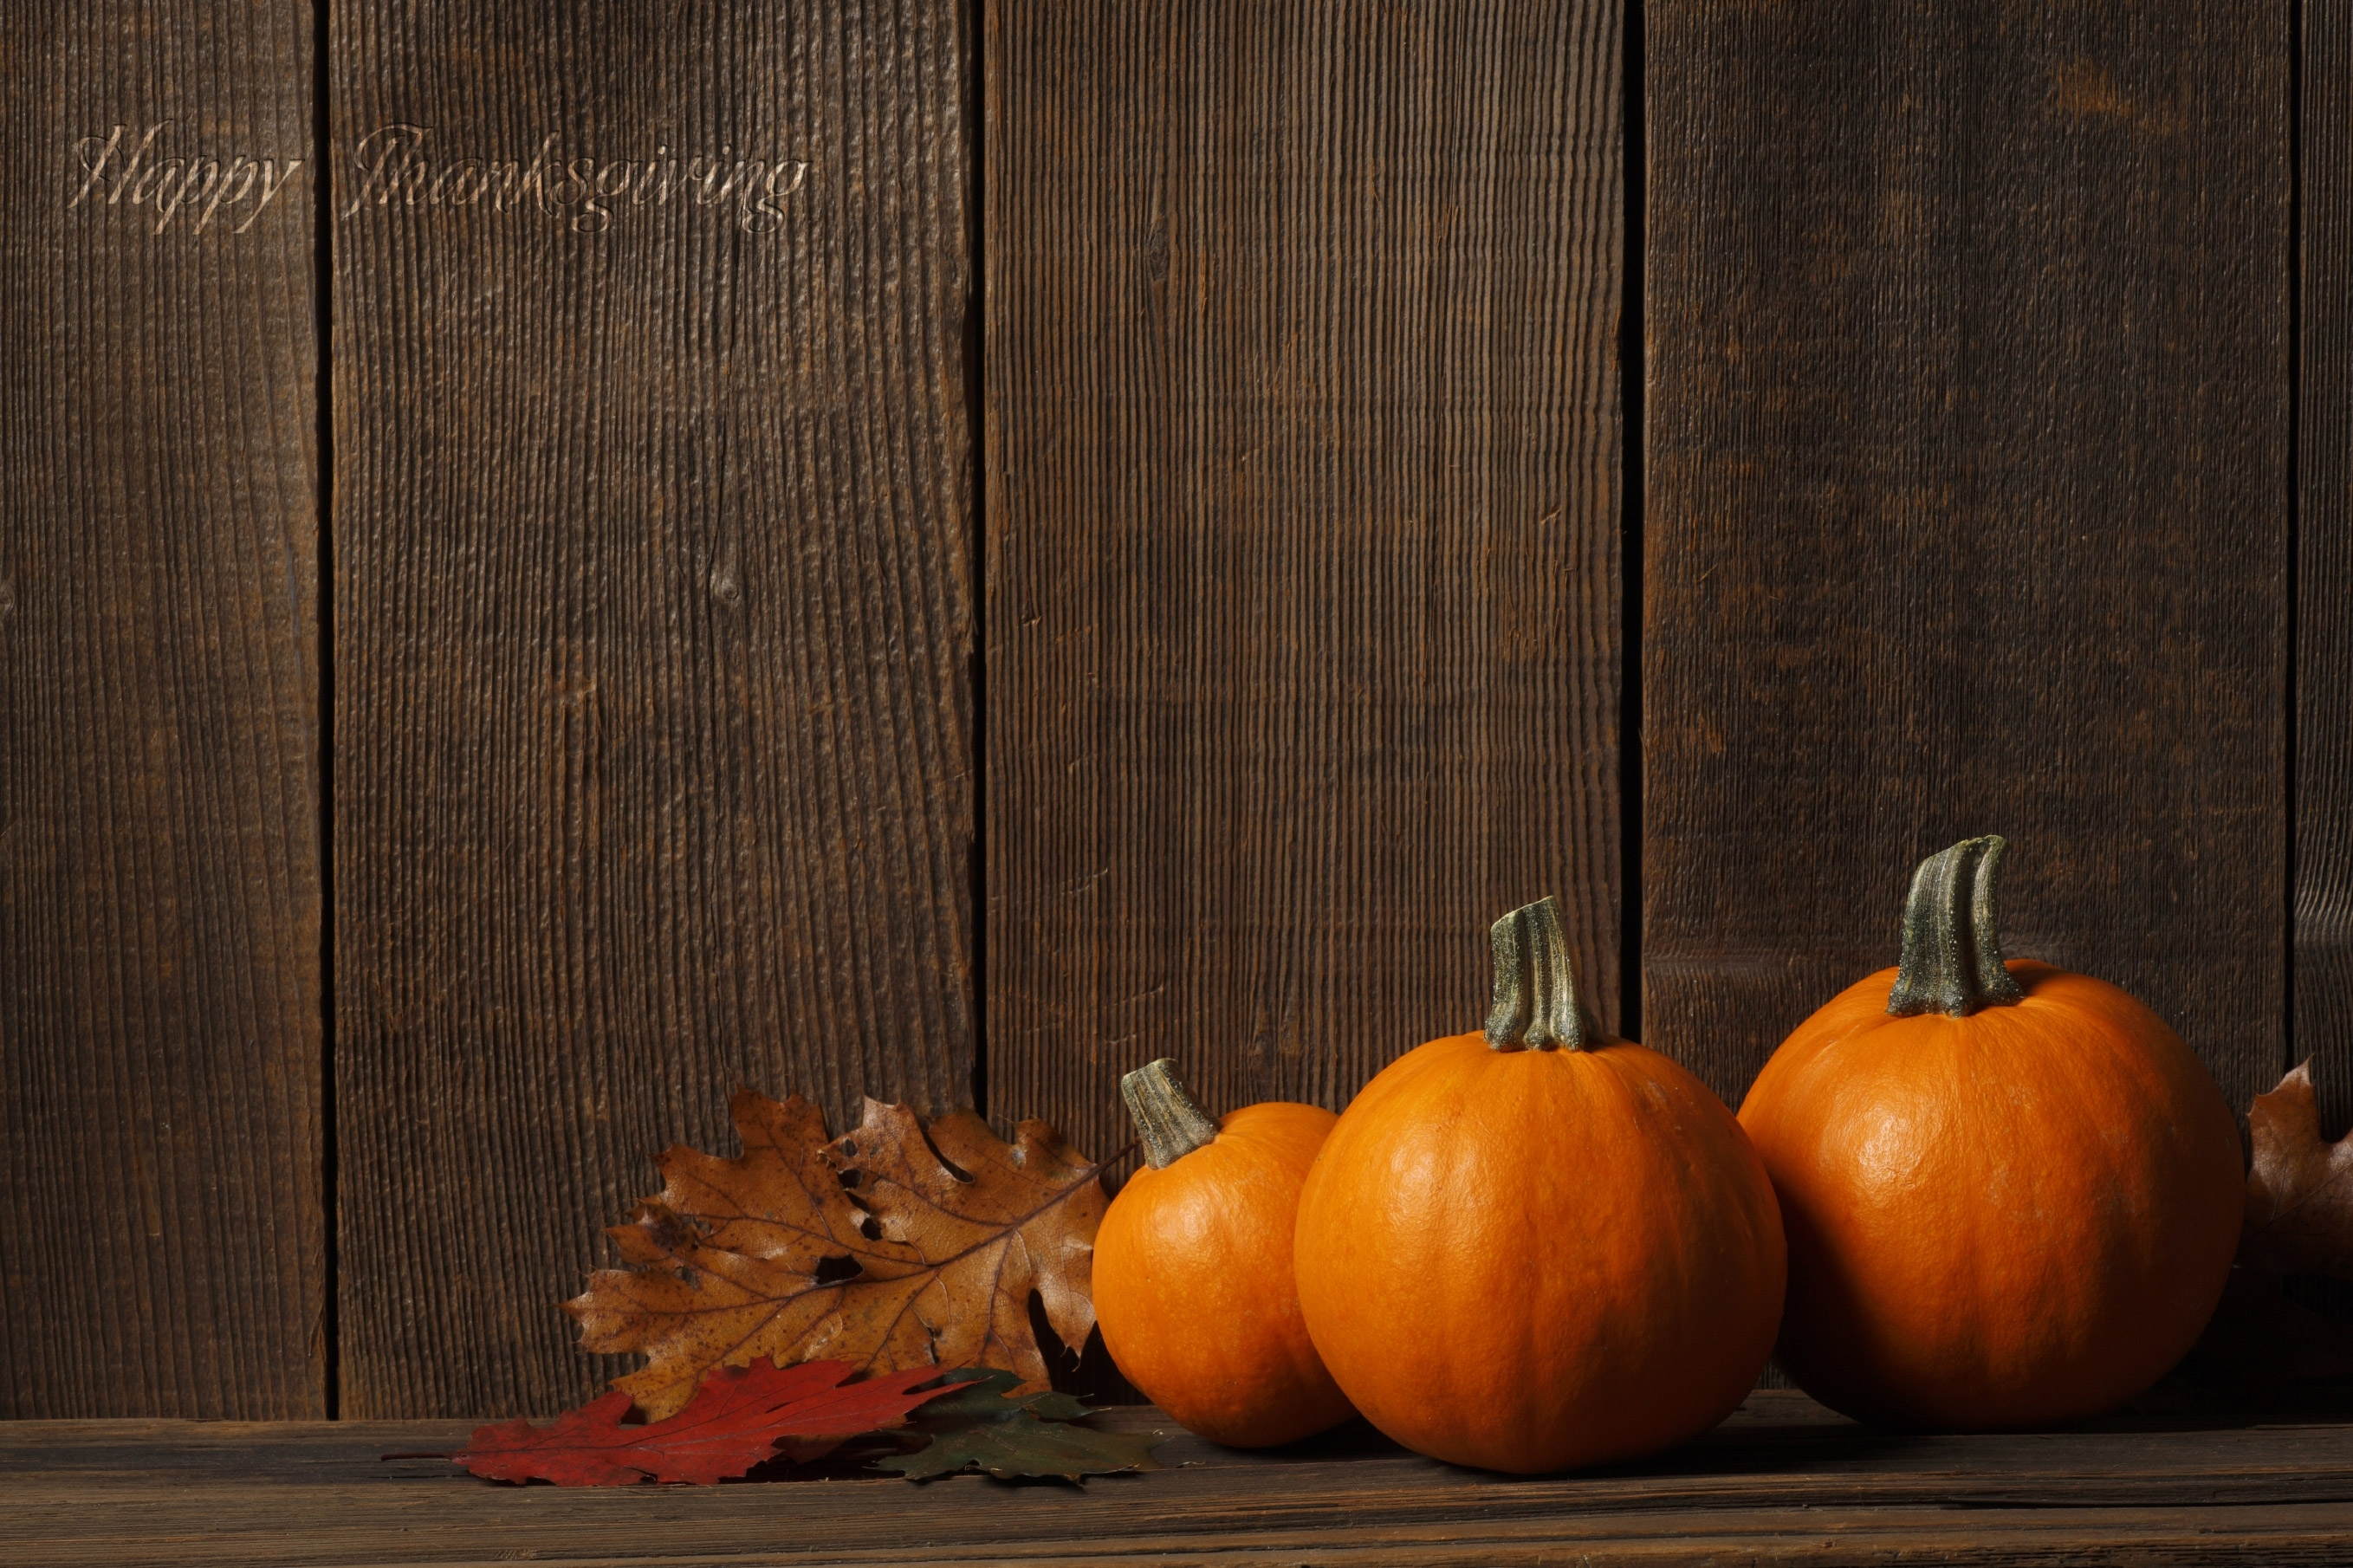 thanksgiving wallpapers, creative thanksgiving wallpapers - #wp